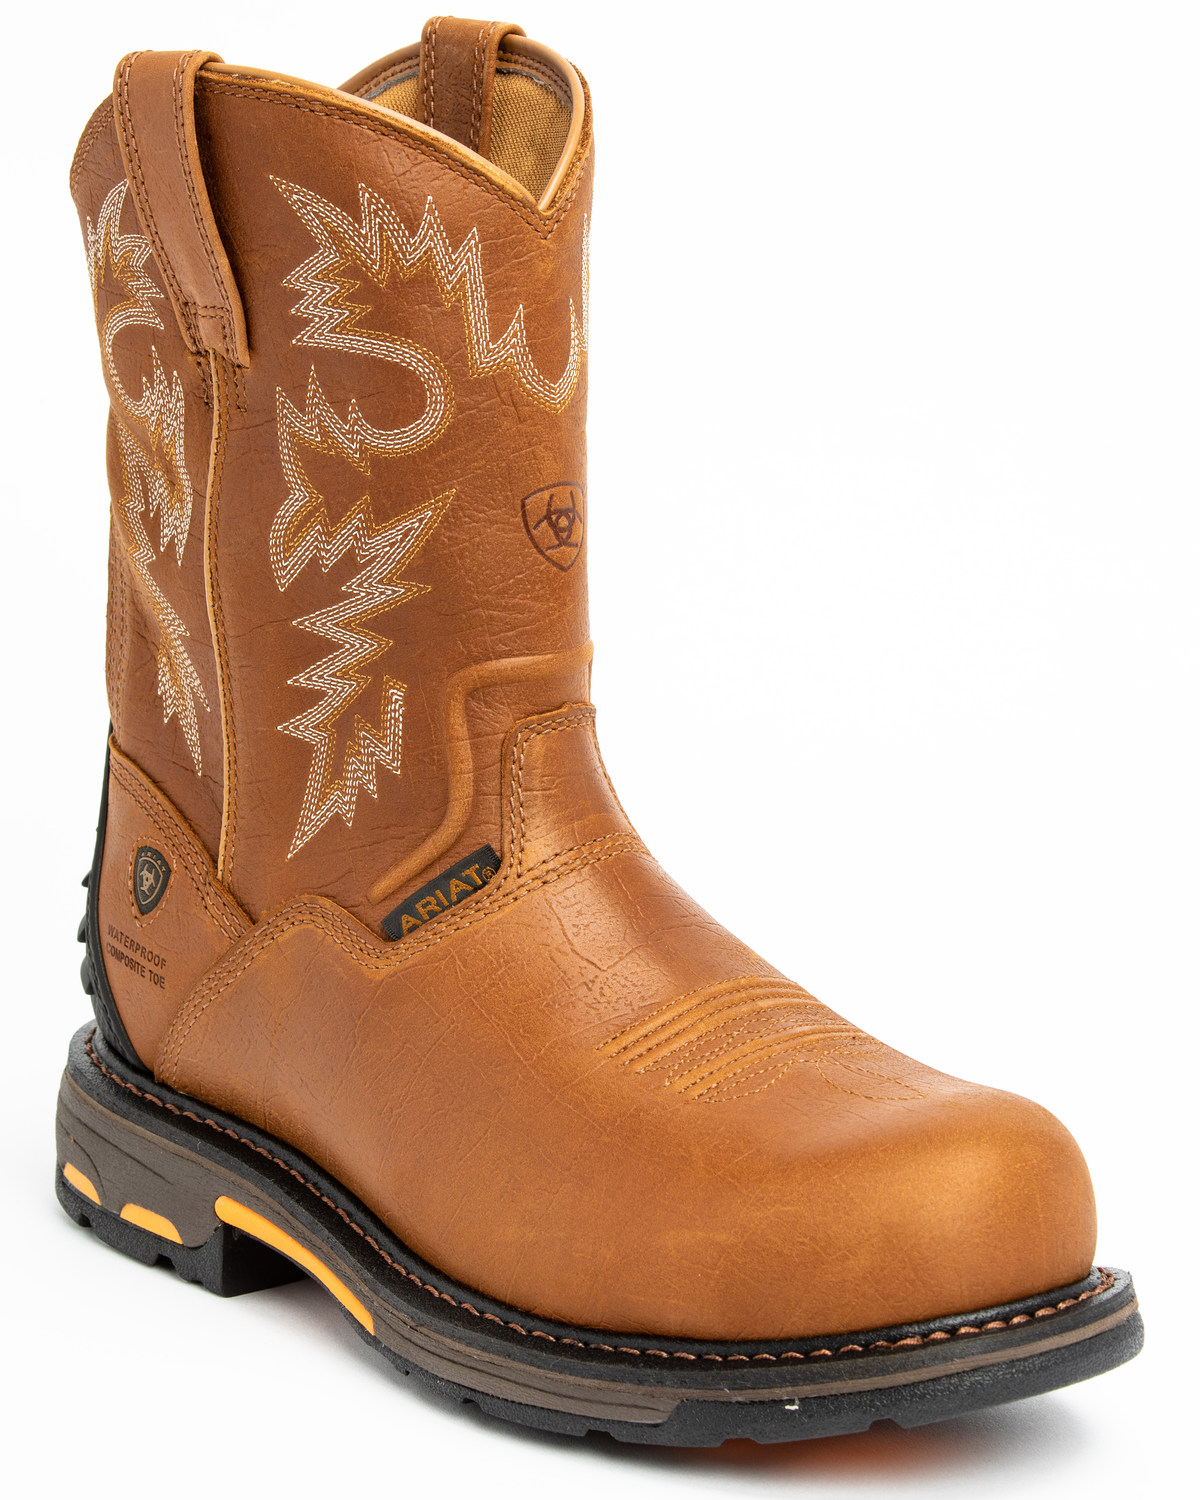 8c1b8d93822 Ariat Men's Workhog RT H2O Composite Toe Work Boots